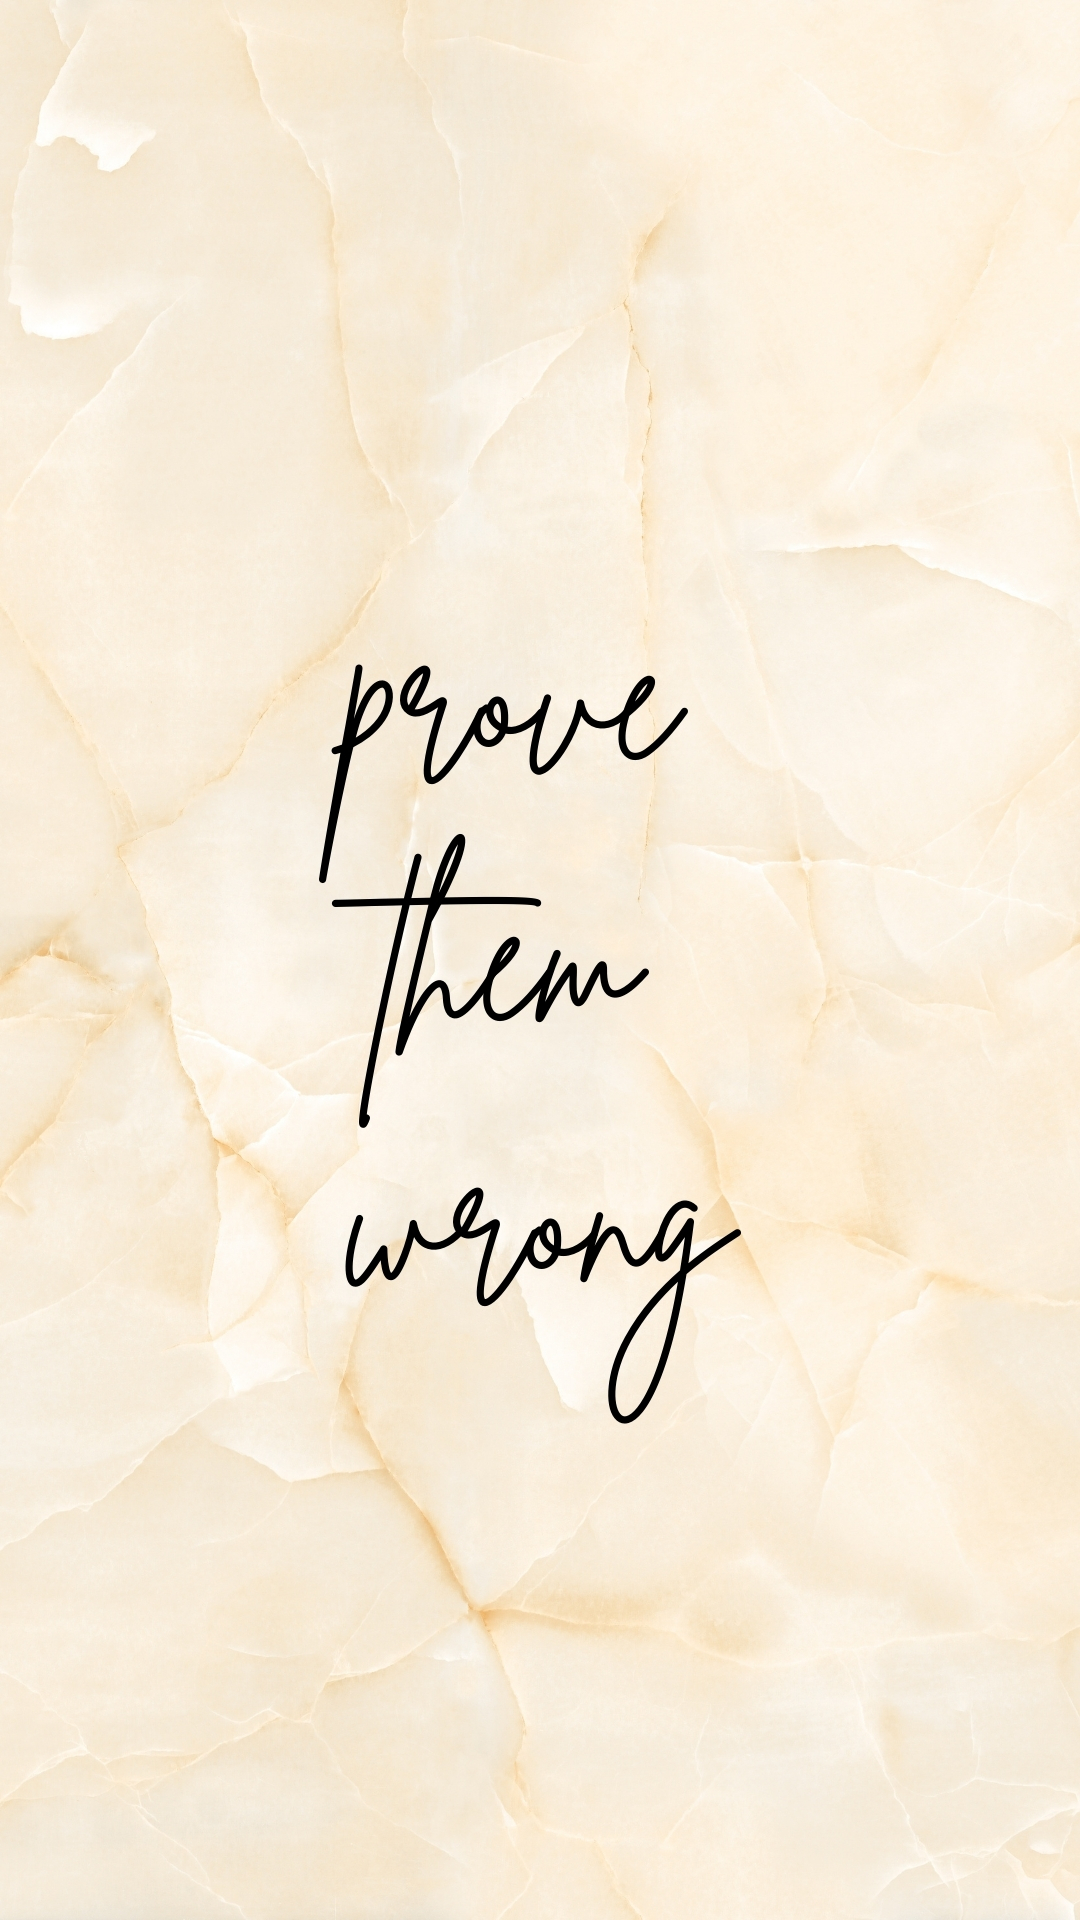 Minimalist iPhone Wallpaper: Prove Them Wrong Wallpaper